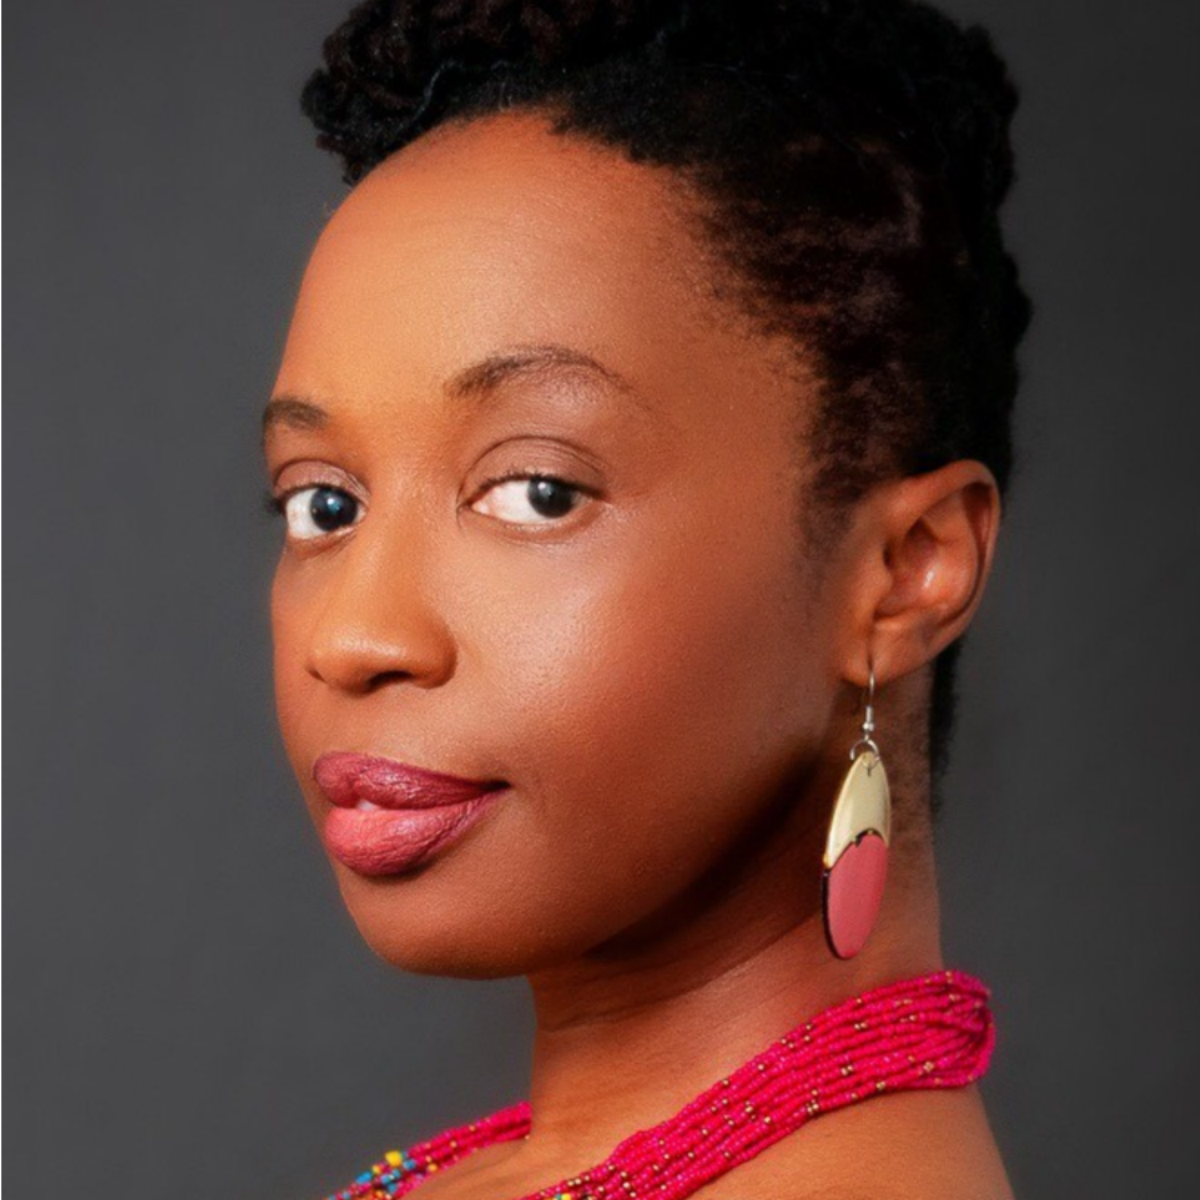 A photo of author Author Bassey Ikpi, a Black woman. She looks at the camera with a soft smile and has a colorful necklace and bright earrings.